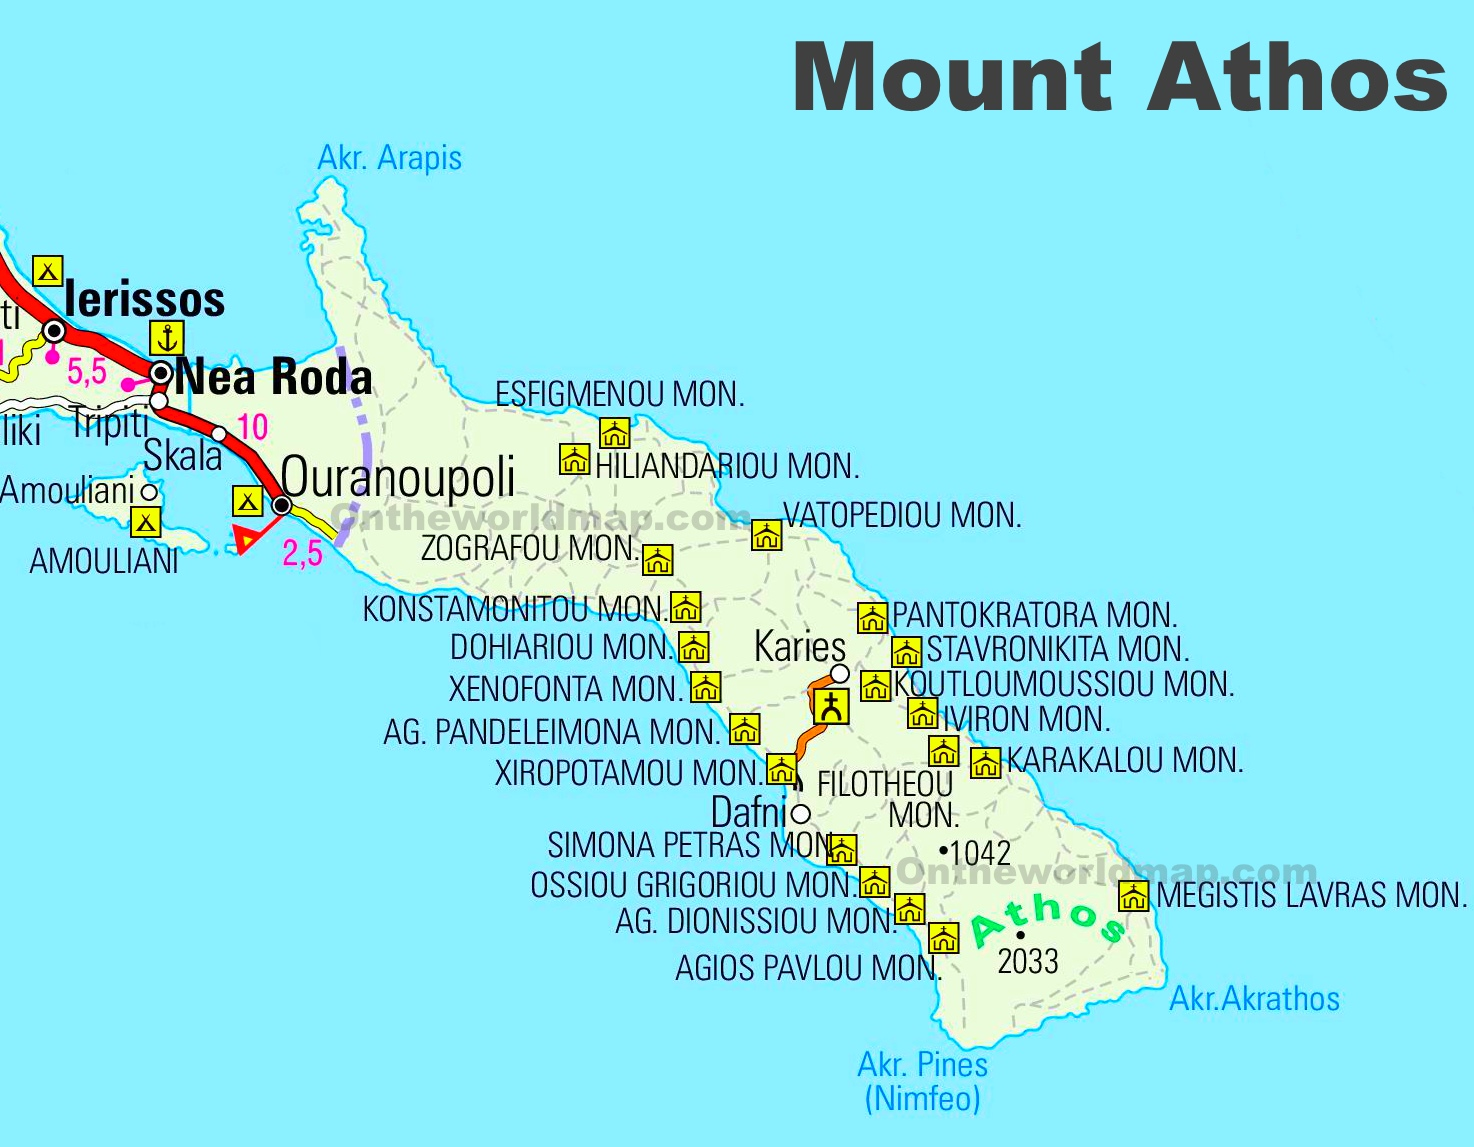 Mount Athos road map